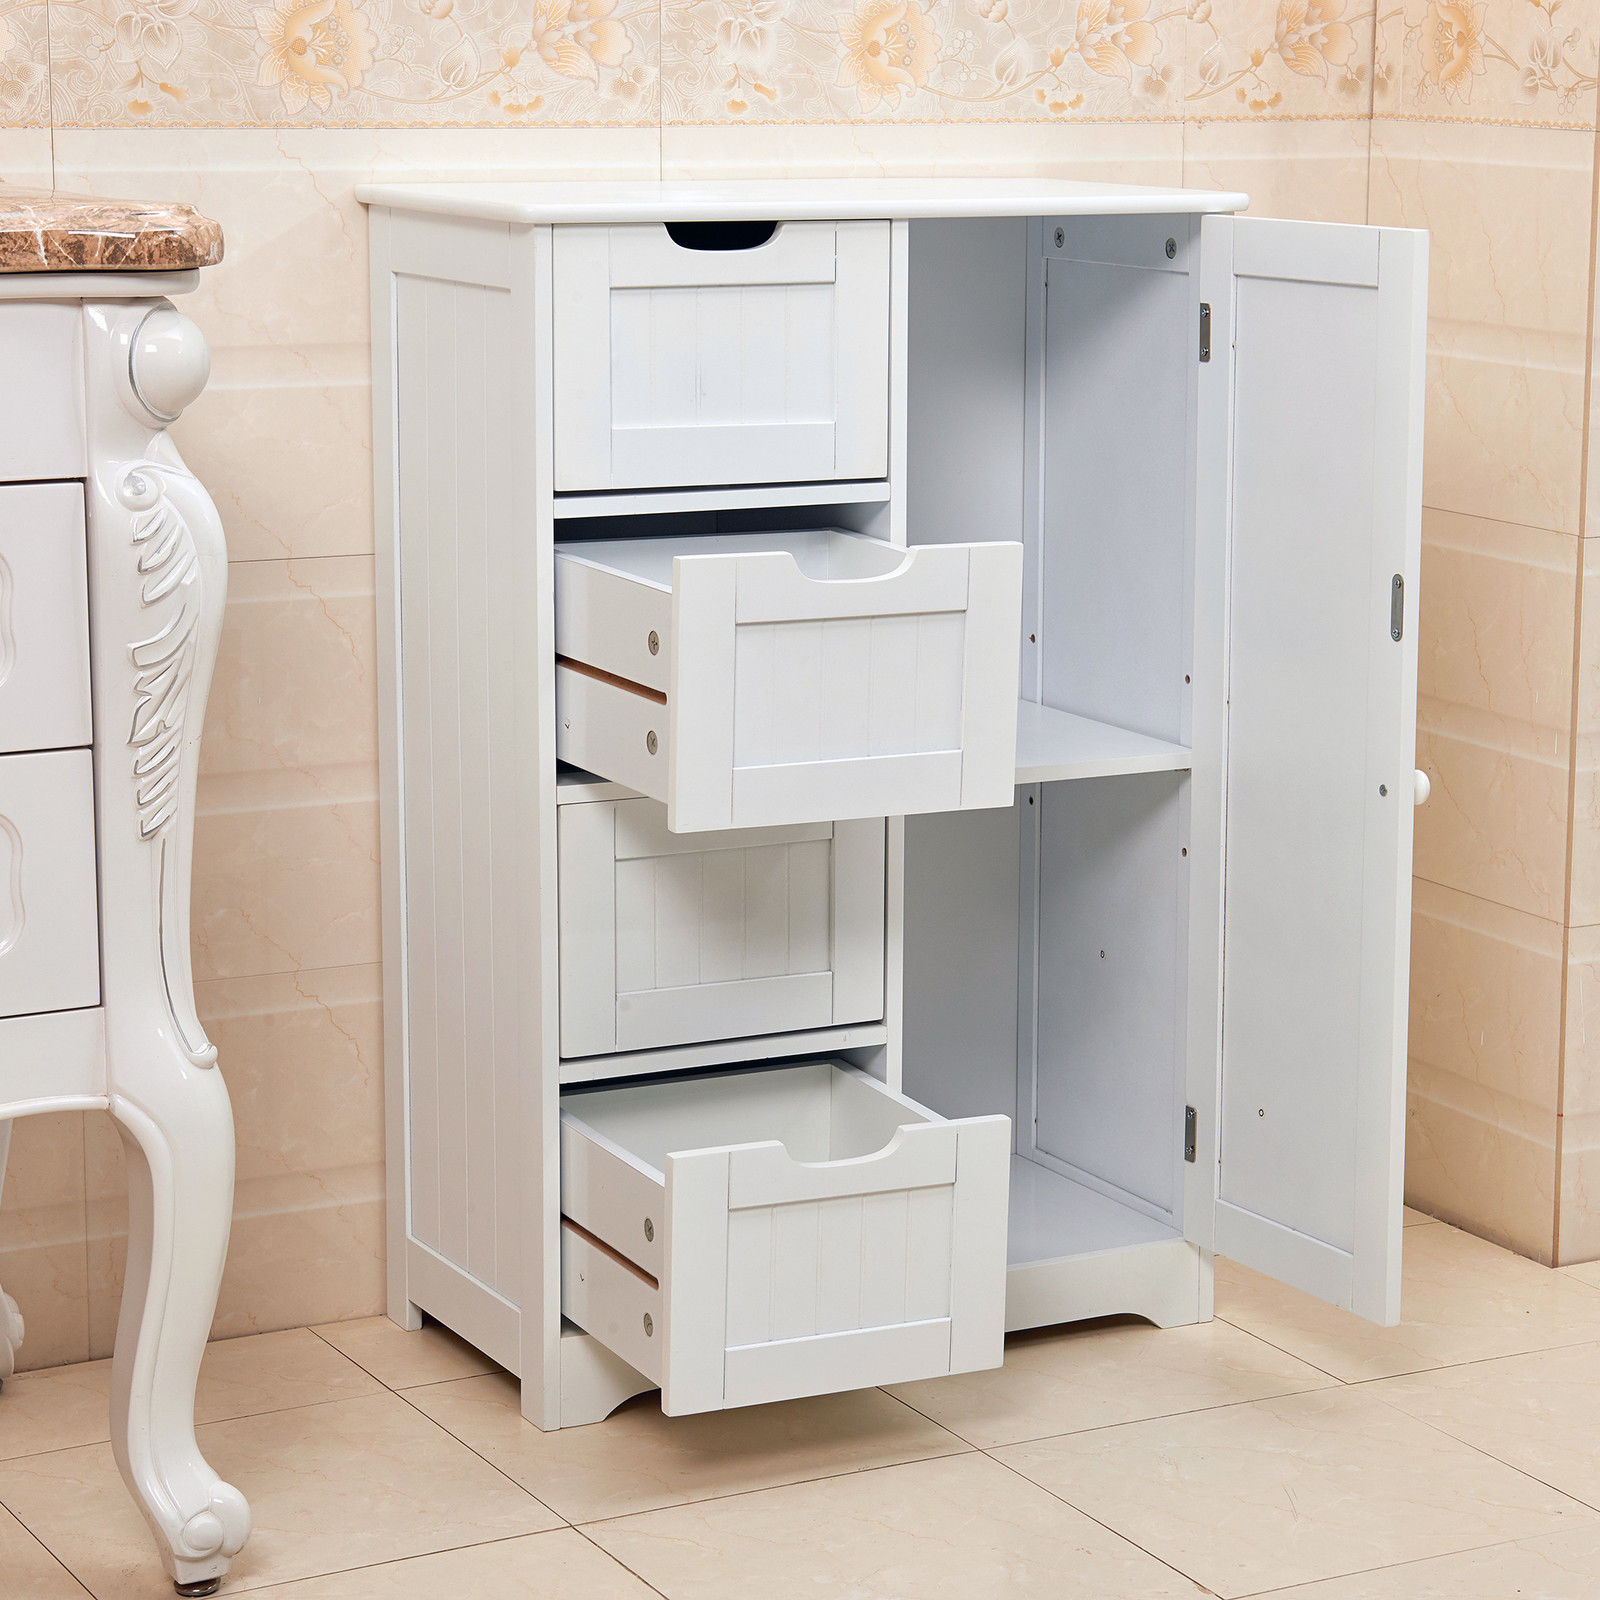 Storage Units Bathroom: White Wooden 4 Drawer Bathroom Storage Cupboard Cabinet